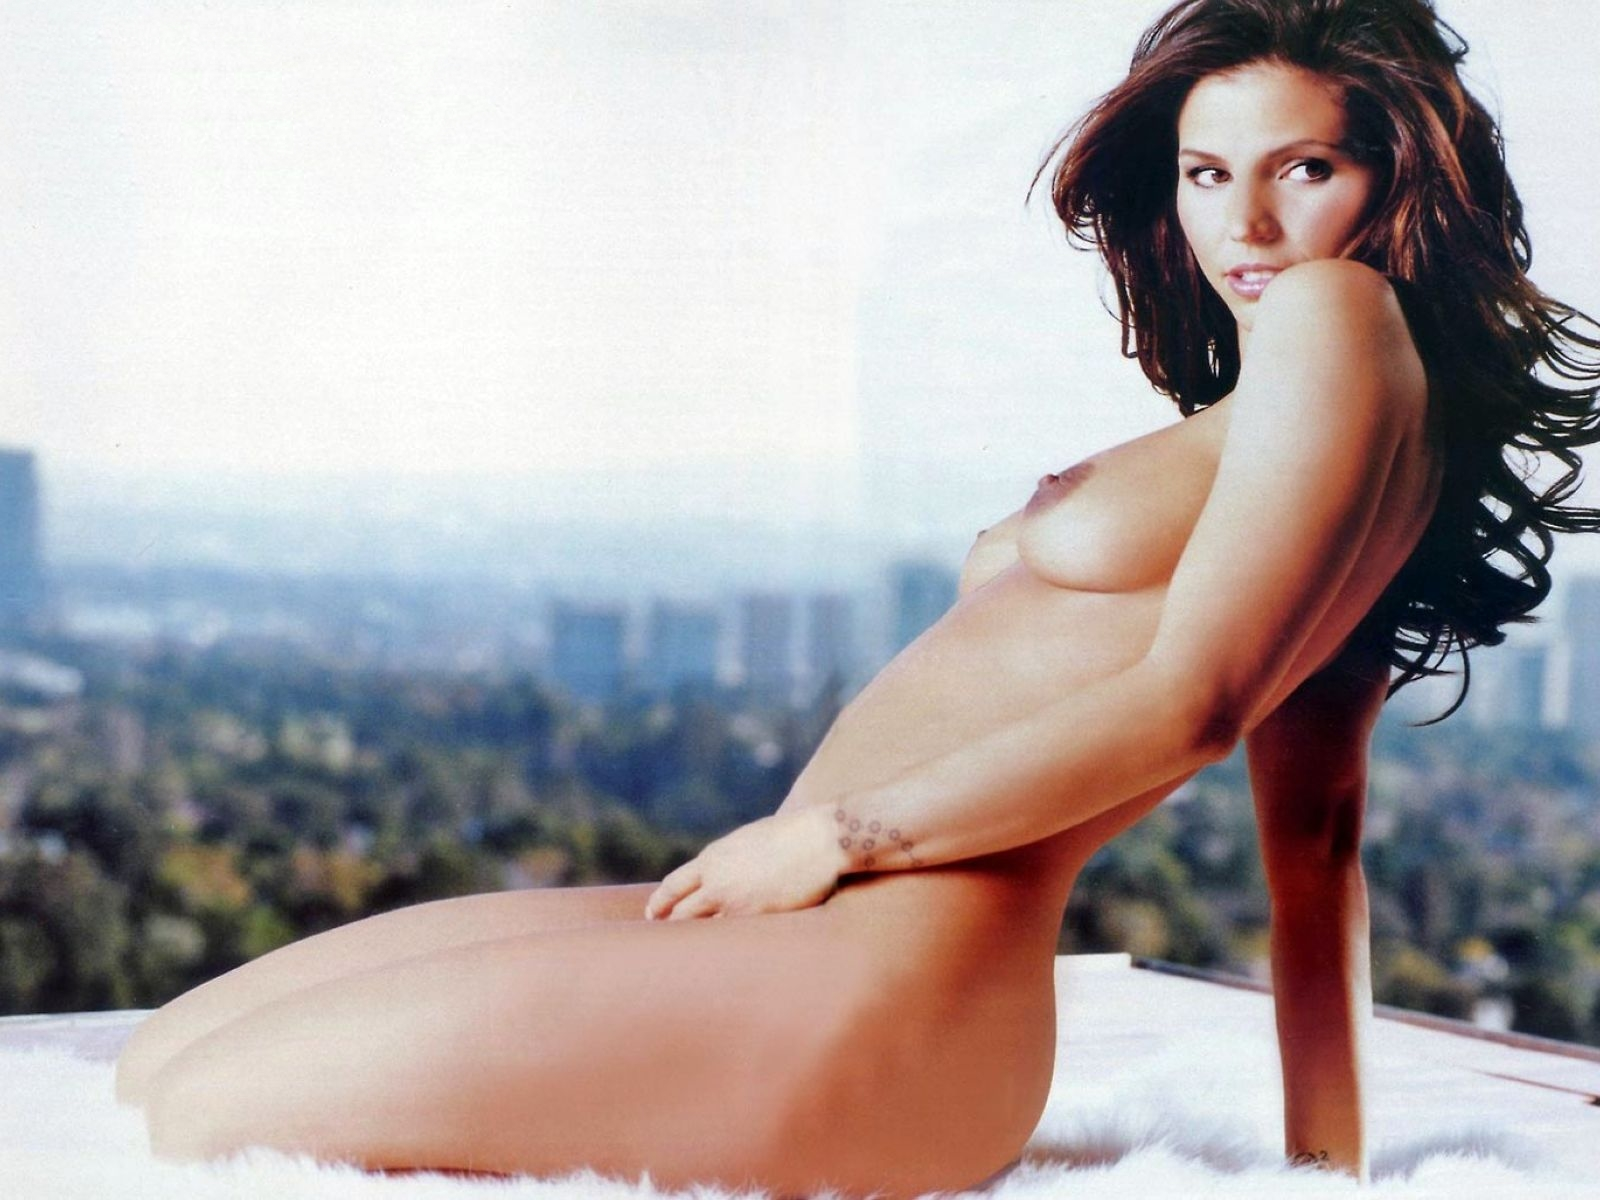 Charisma carpenter naked pictures